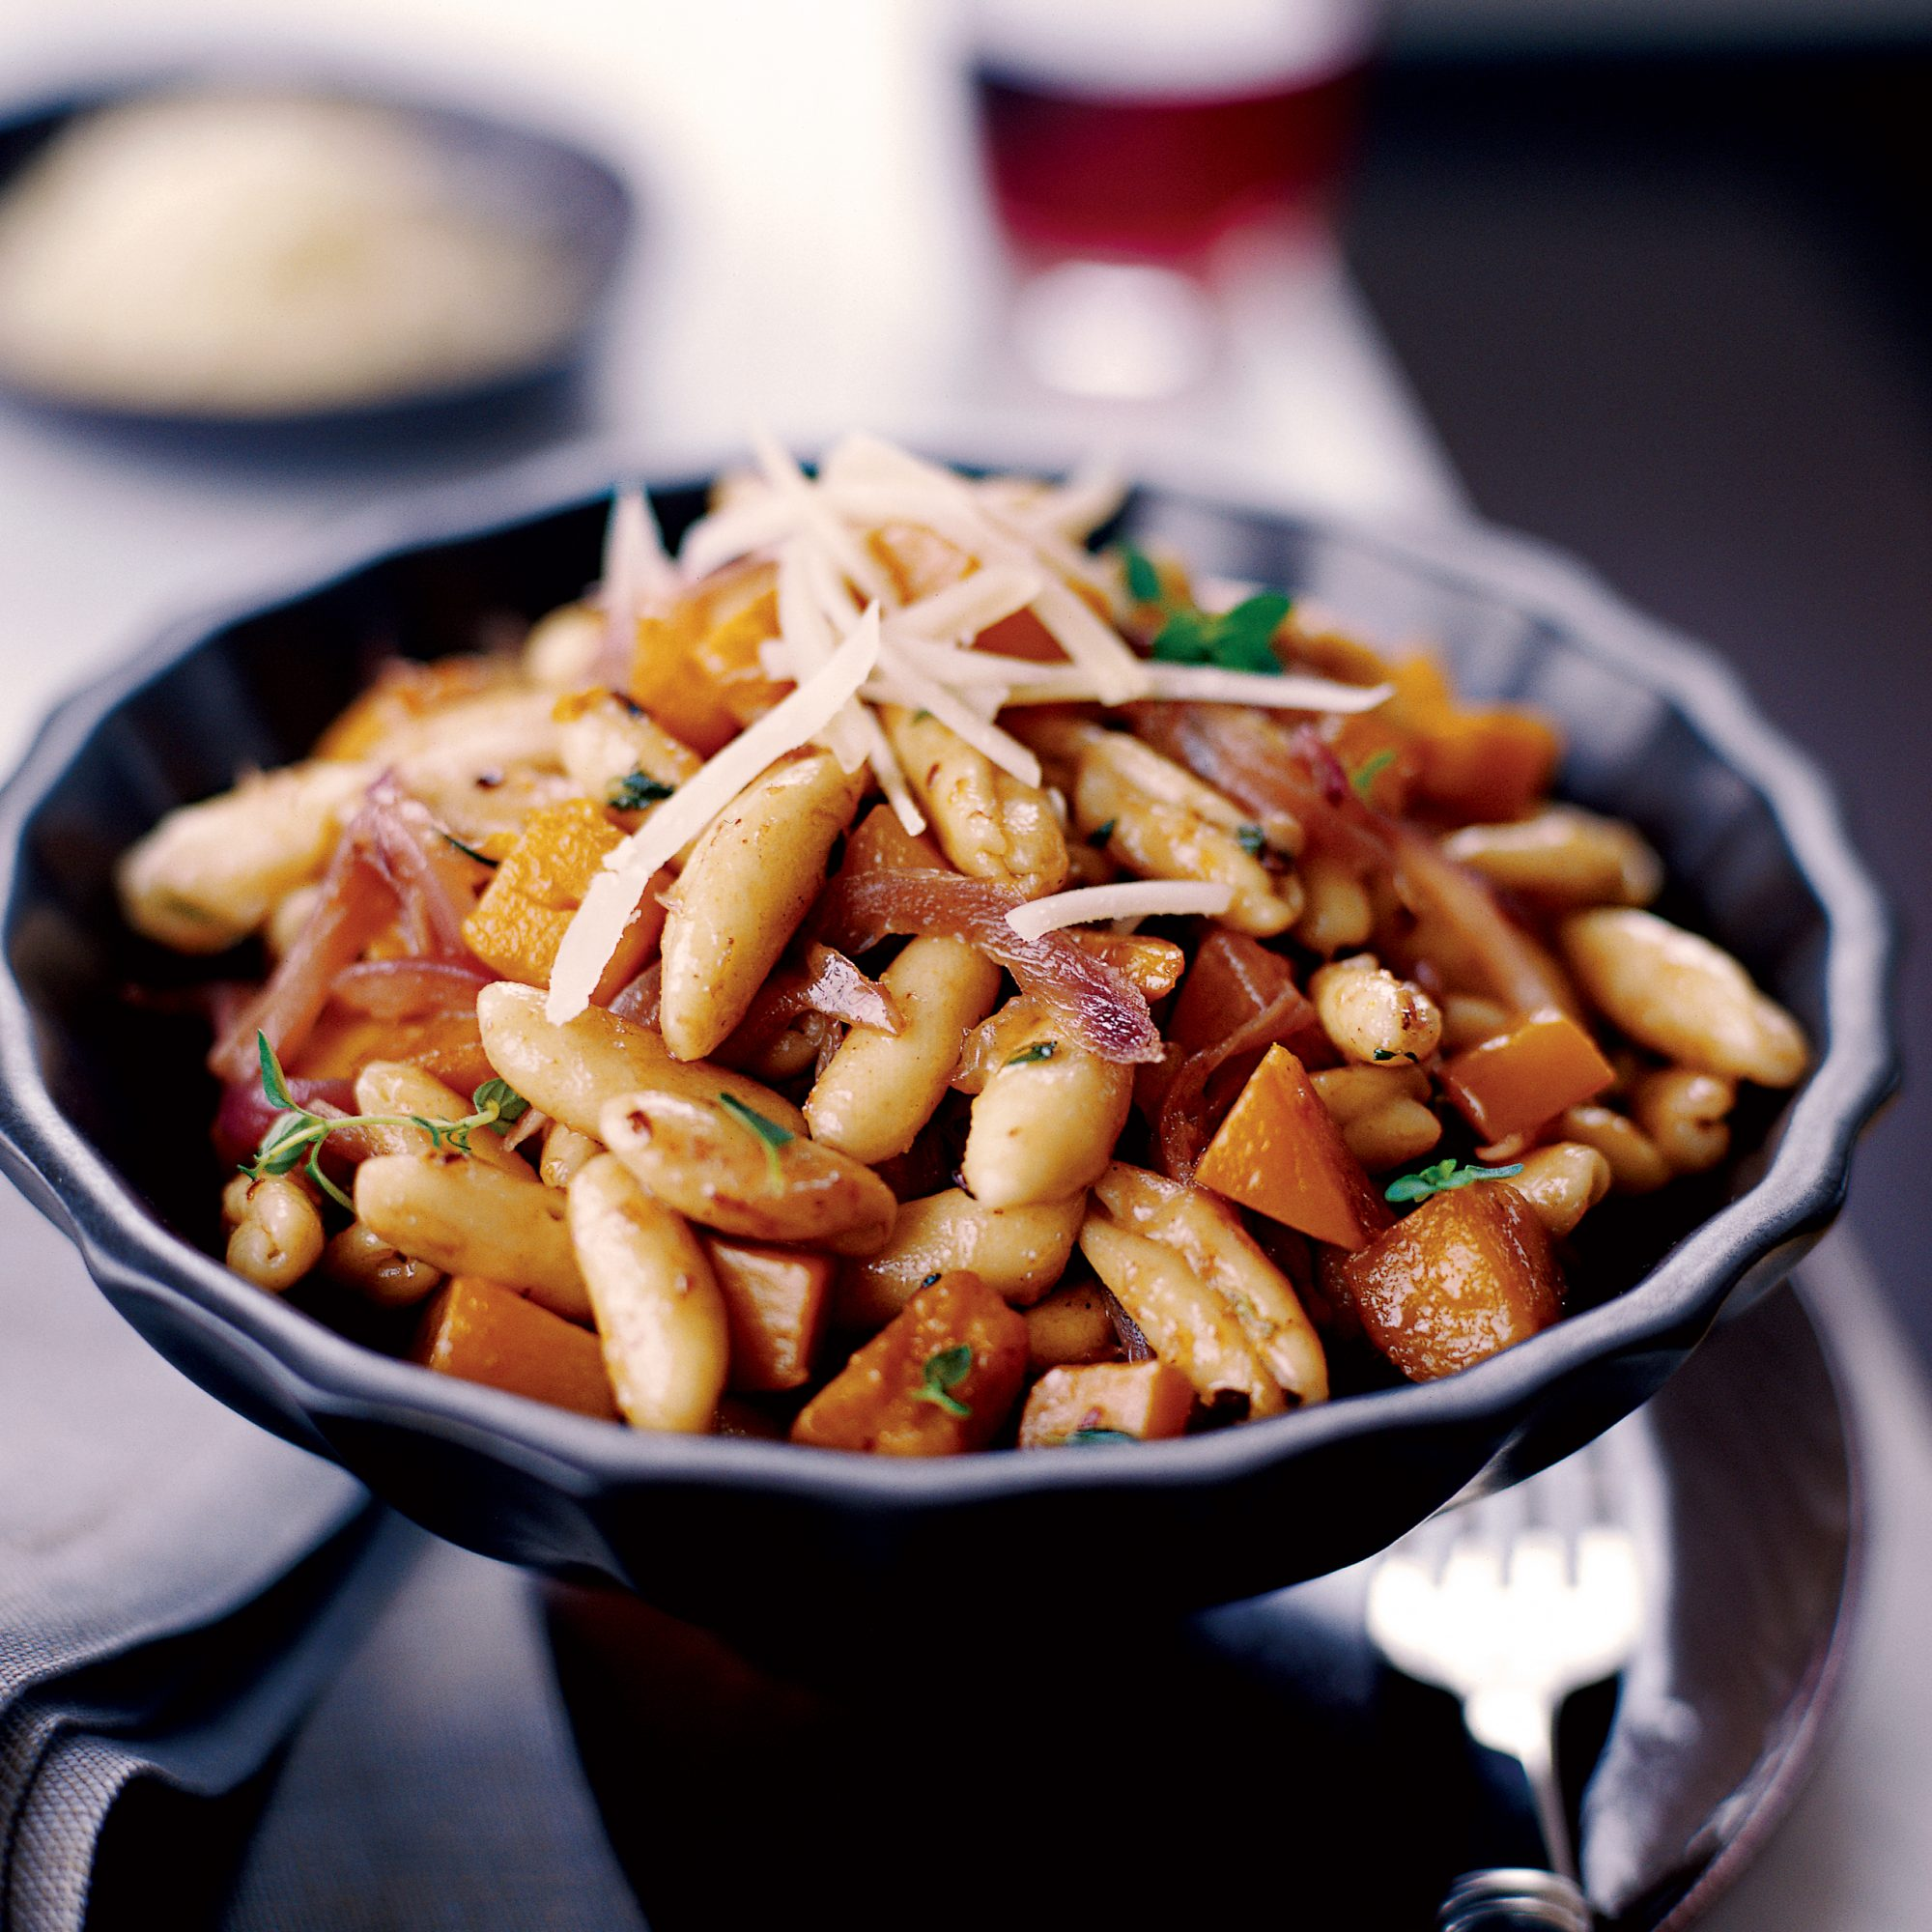 Cavatelli with Spicy Winter Squash for Lent